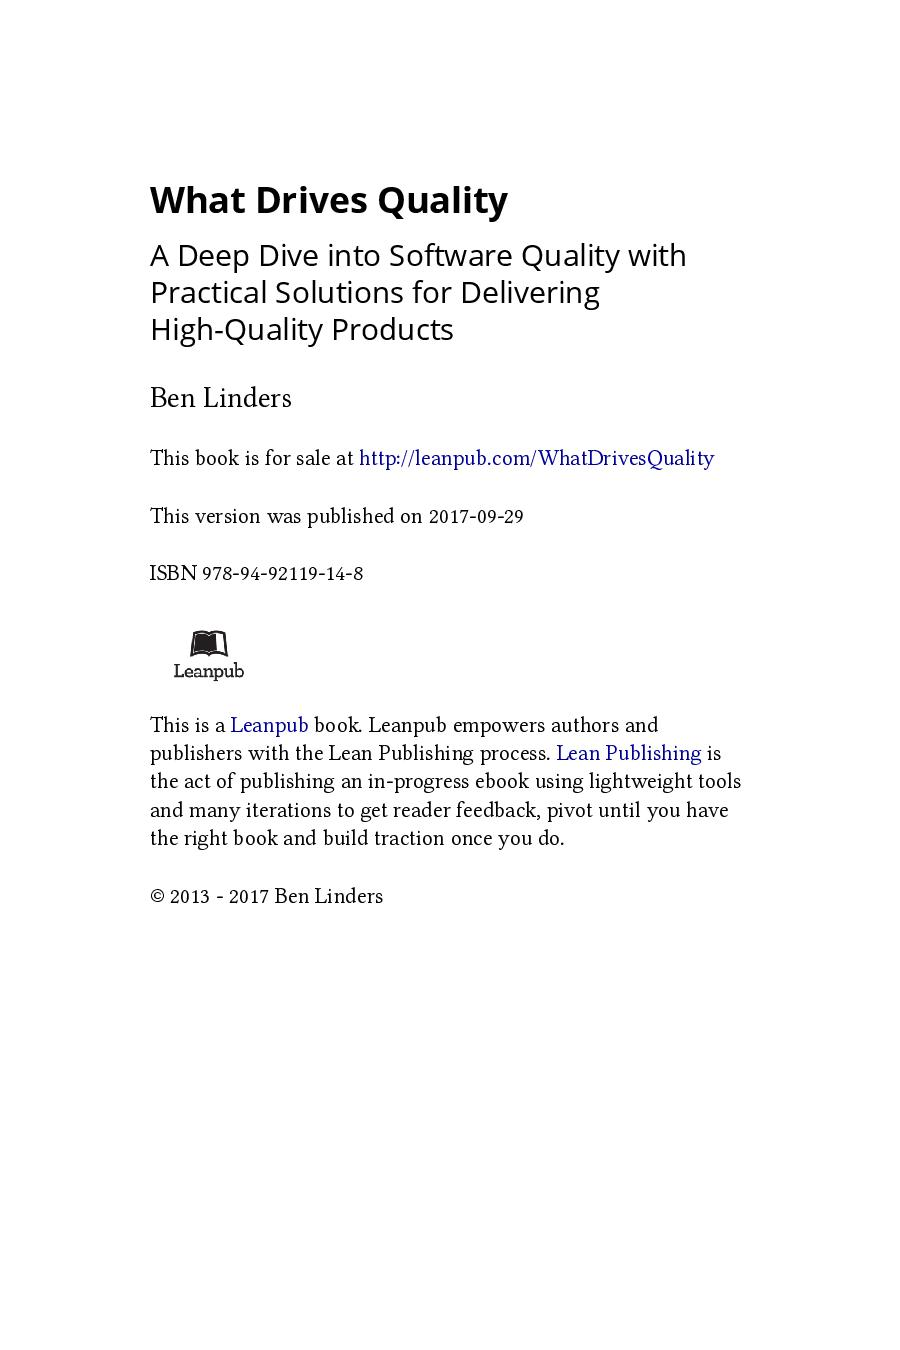 What Drives Quality (eBook)